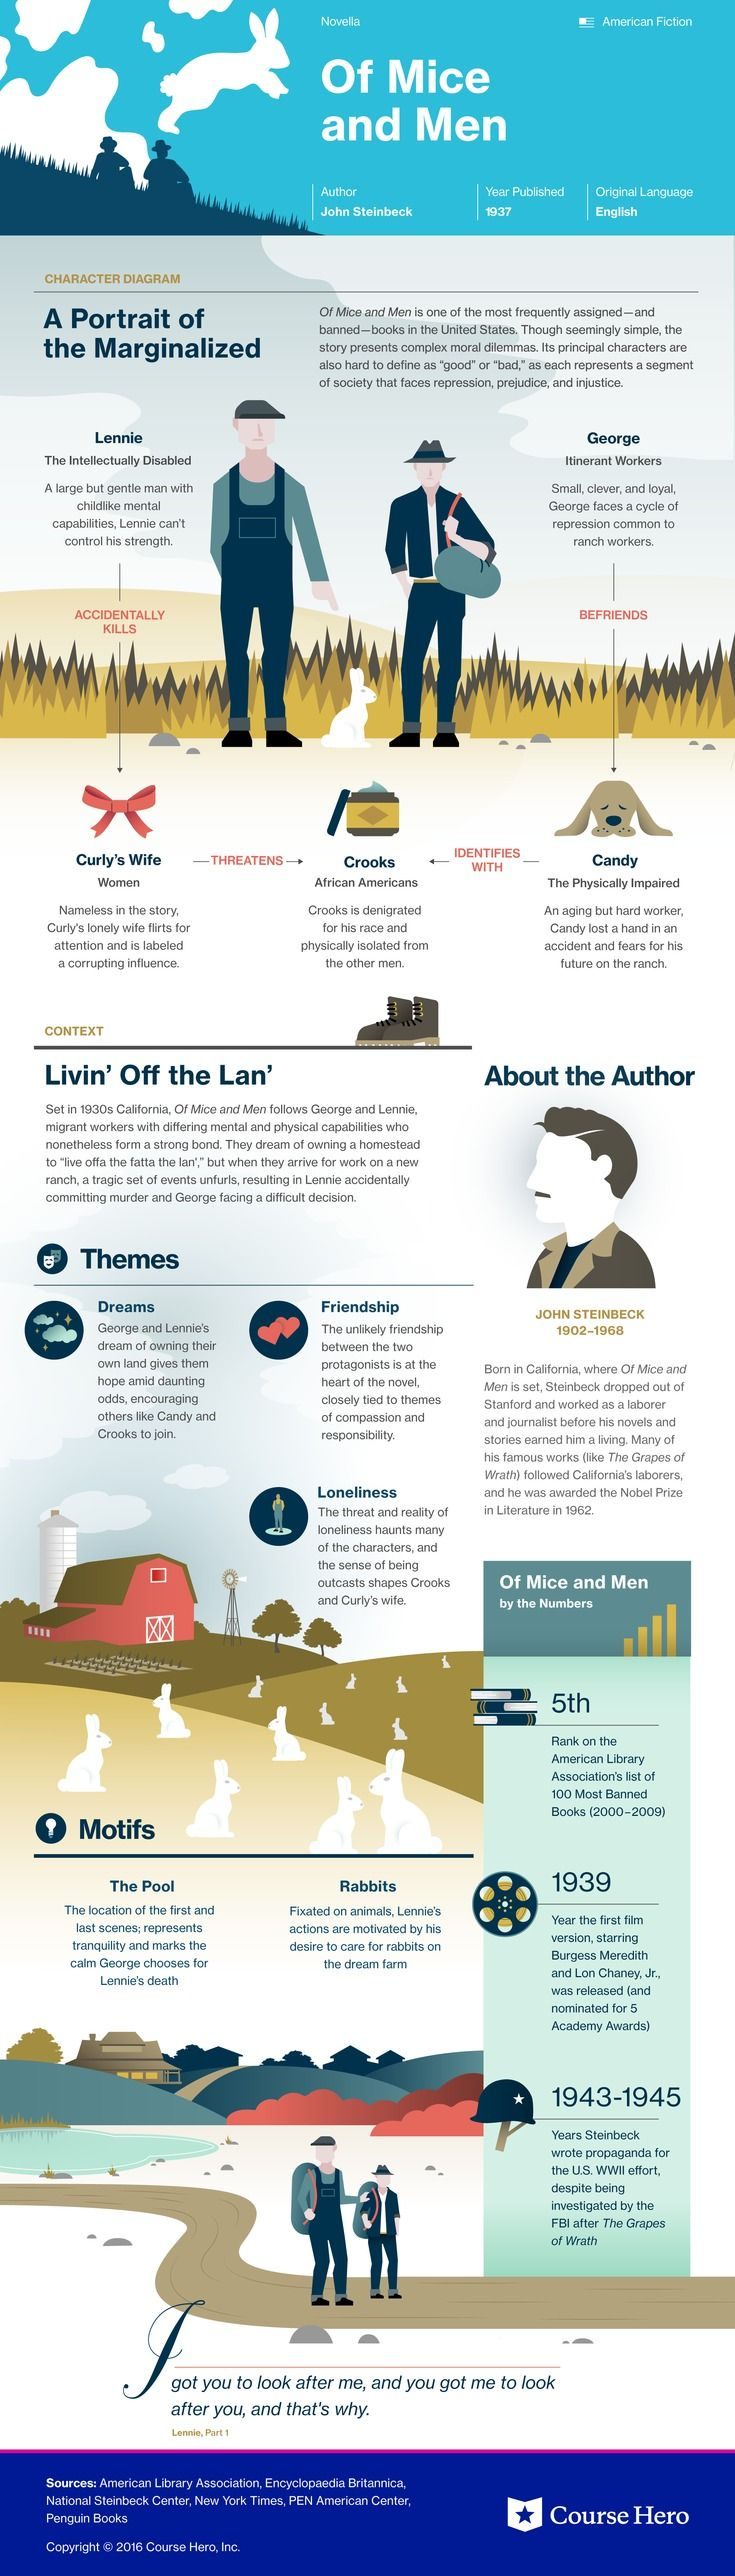 best ideas about of mice and men novels classic john steinbeck s of mice and men chapter summary summaries for every chapter including a of mice and men chapter summary chart to help you understand